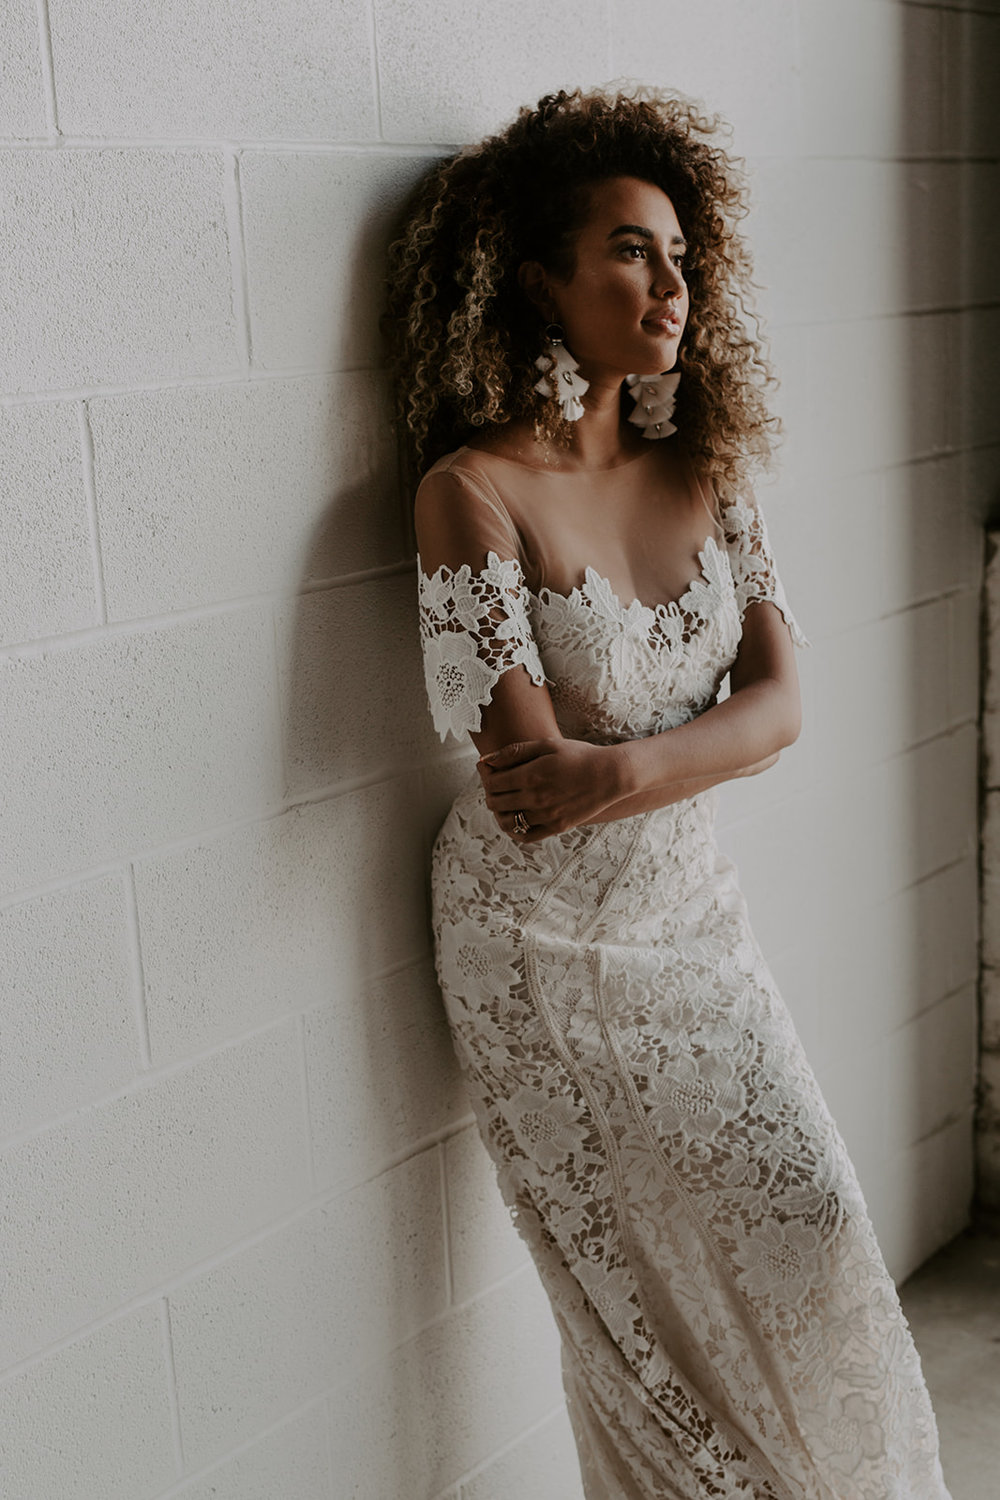 IndieRose Shoot - Meme Urbane Photography bridal-2.jpg